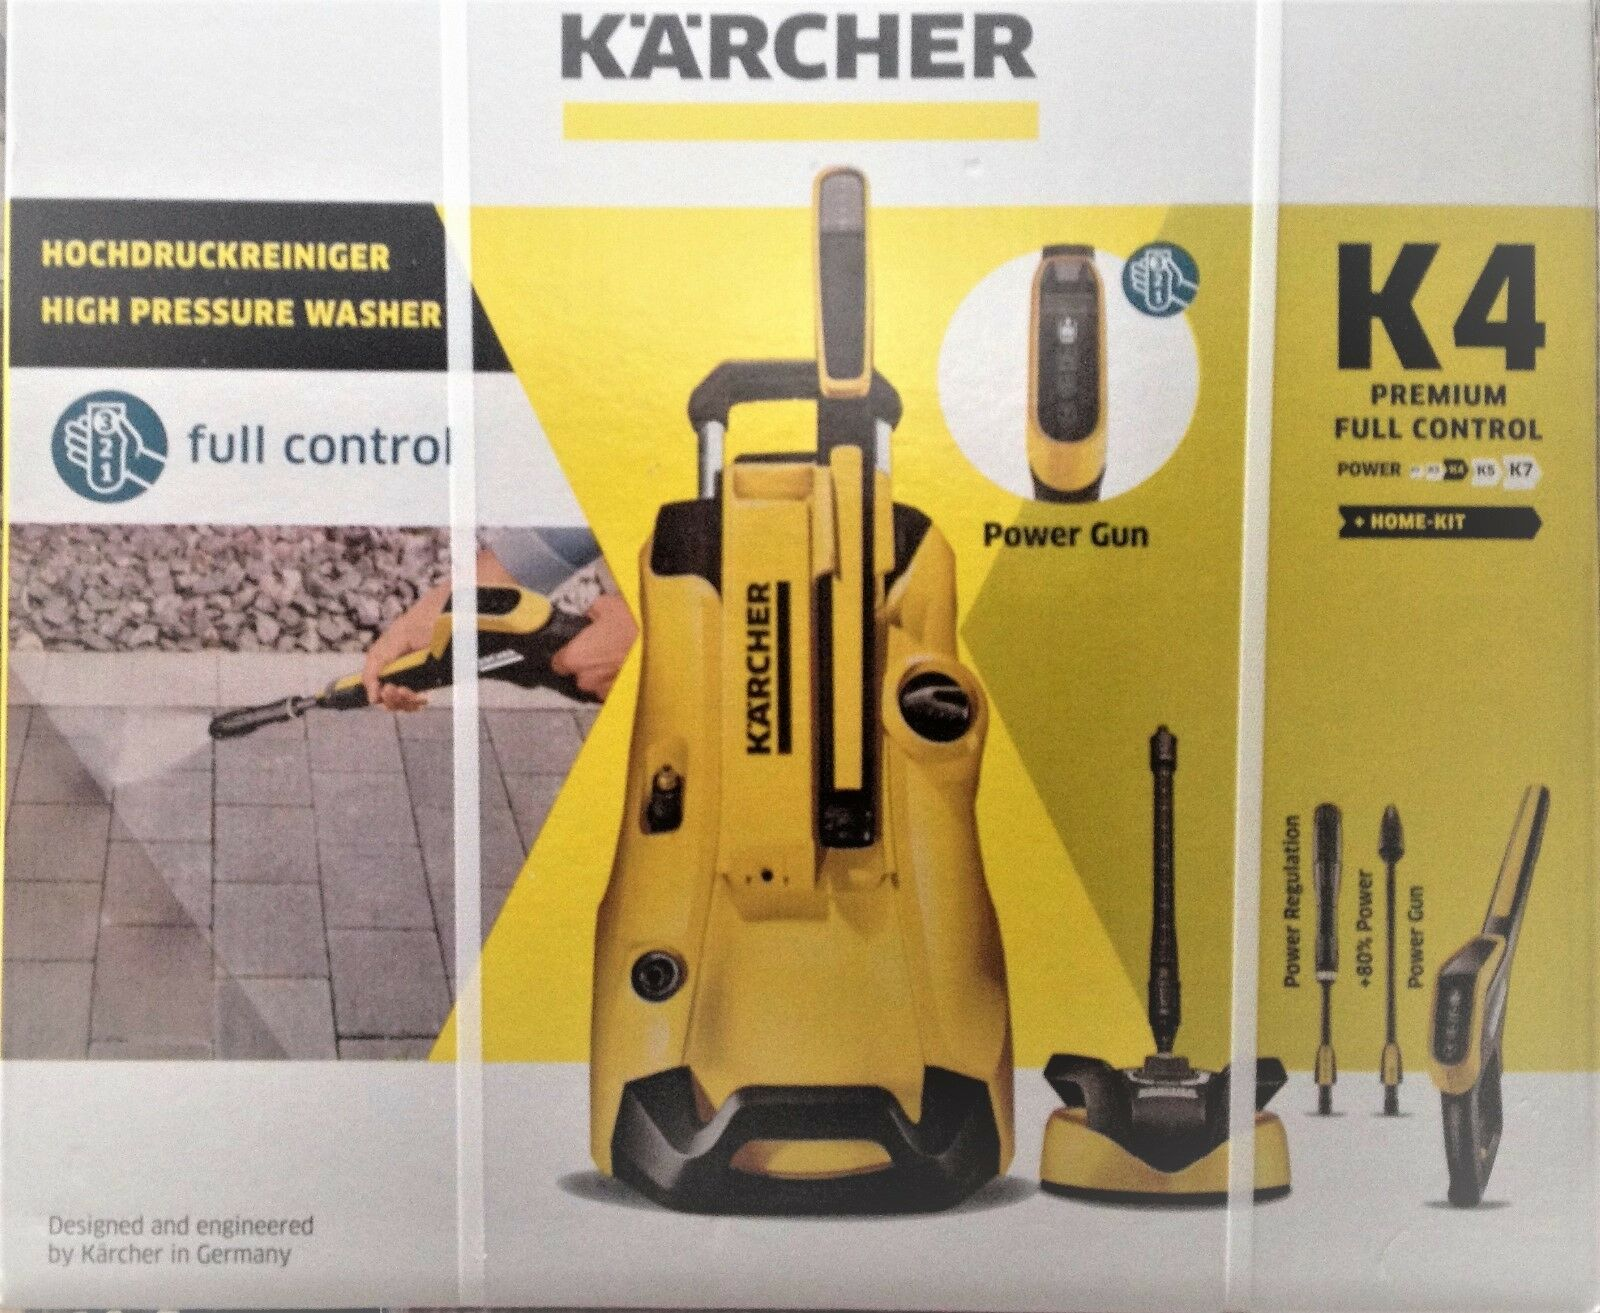 karcher k4 premium full control home pressure washer package t350 patio cleaner. Black Bedroom Furniture Sets. Home Design Ideas